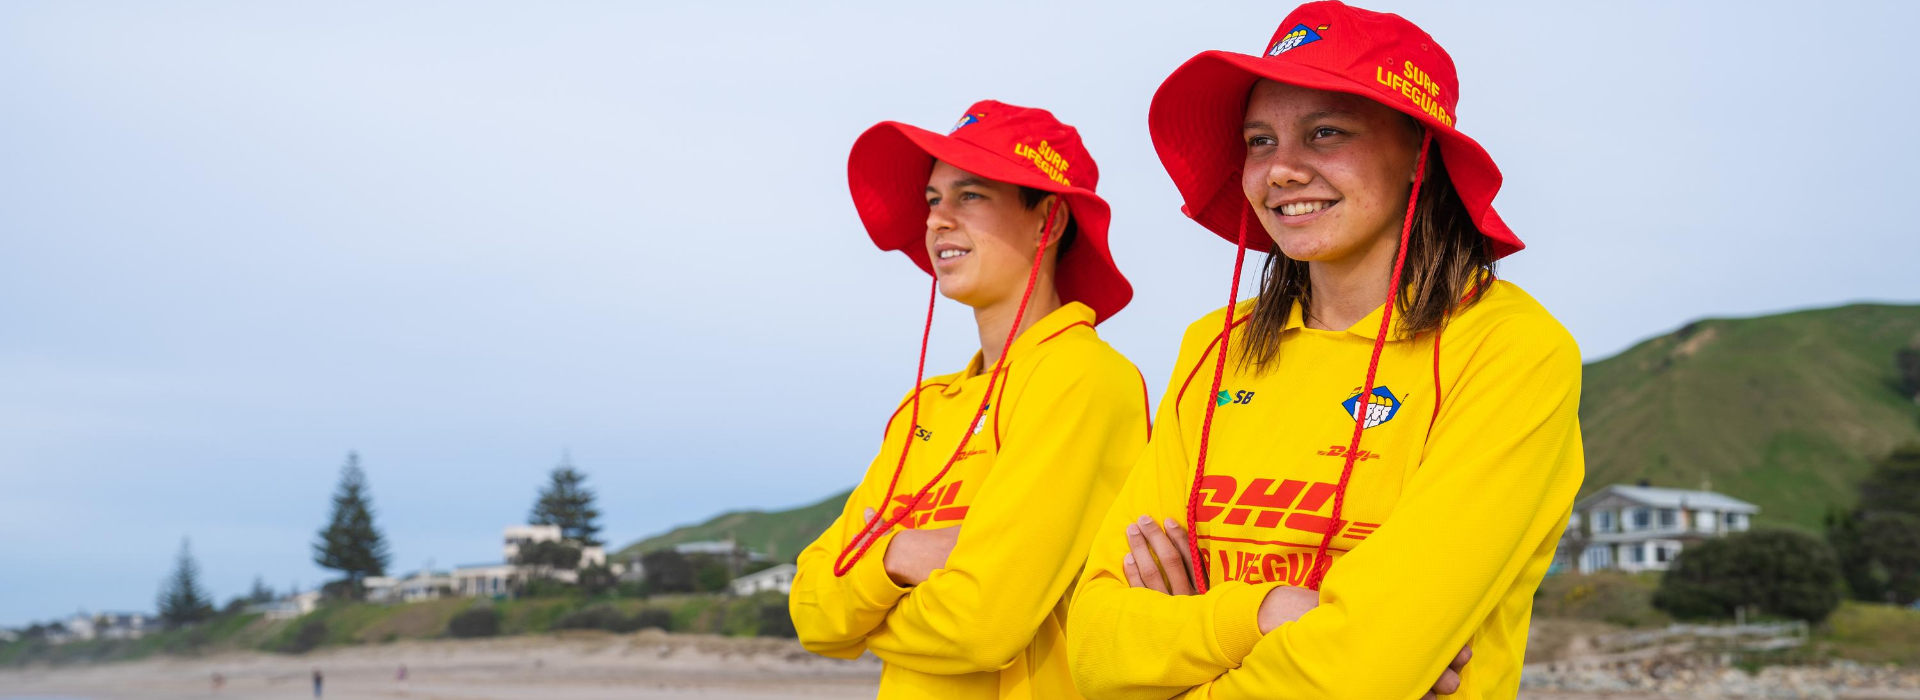 Male Female Surf Lifeguards Smiling Happy Faces 1